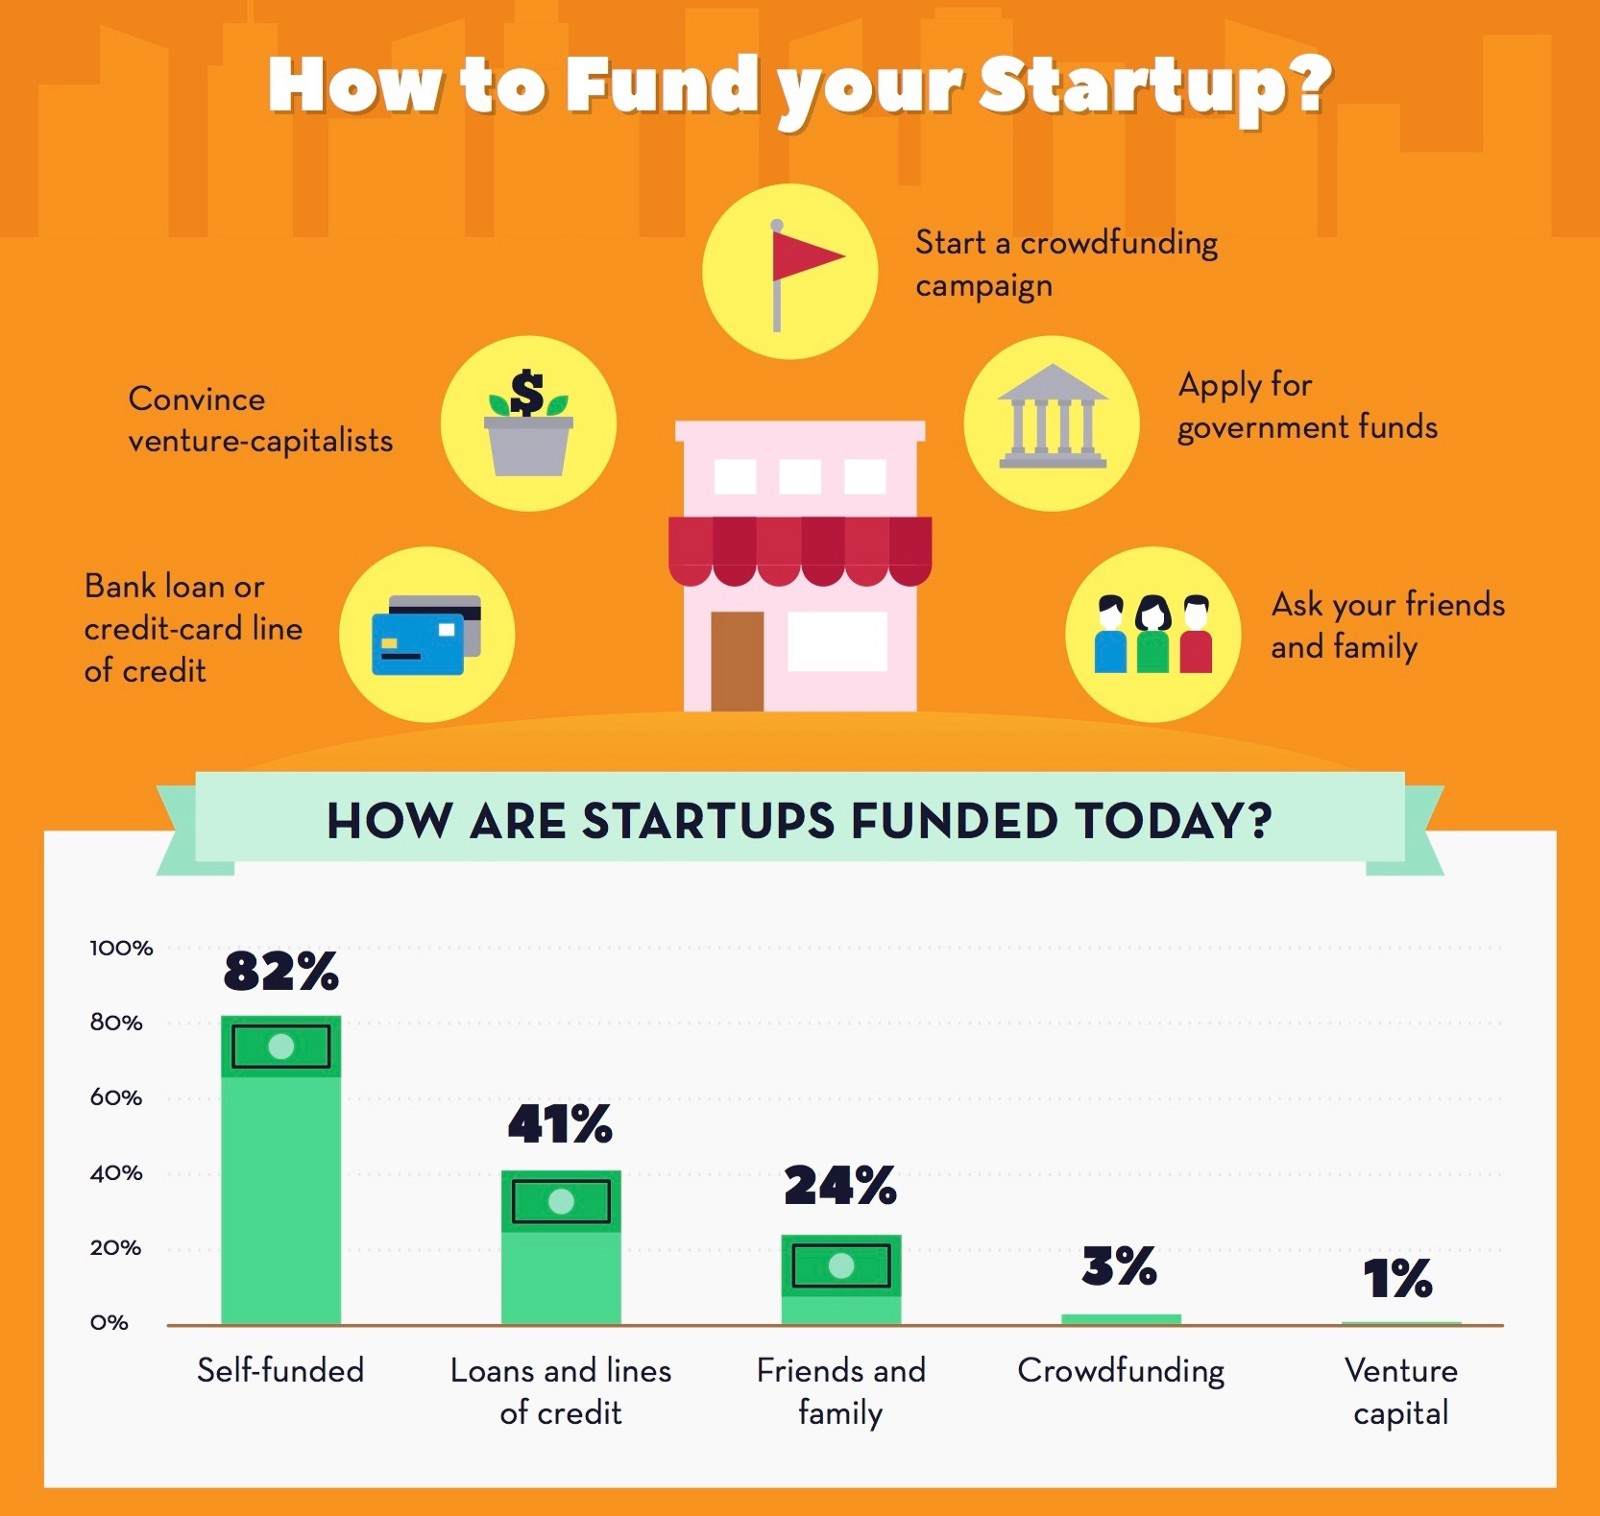 How to Fund Your Startup as an Entrepreneur